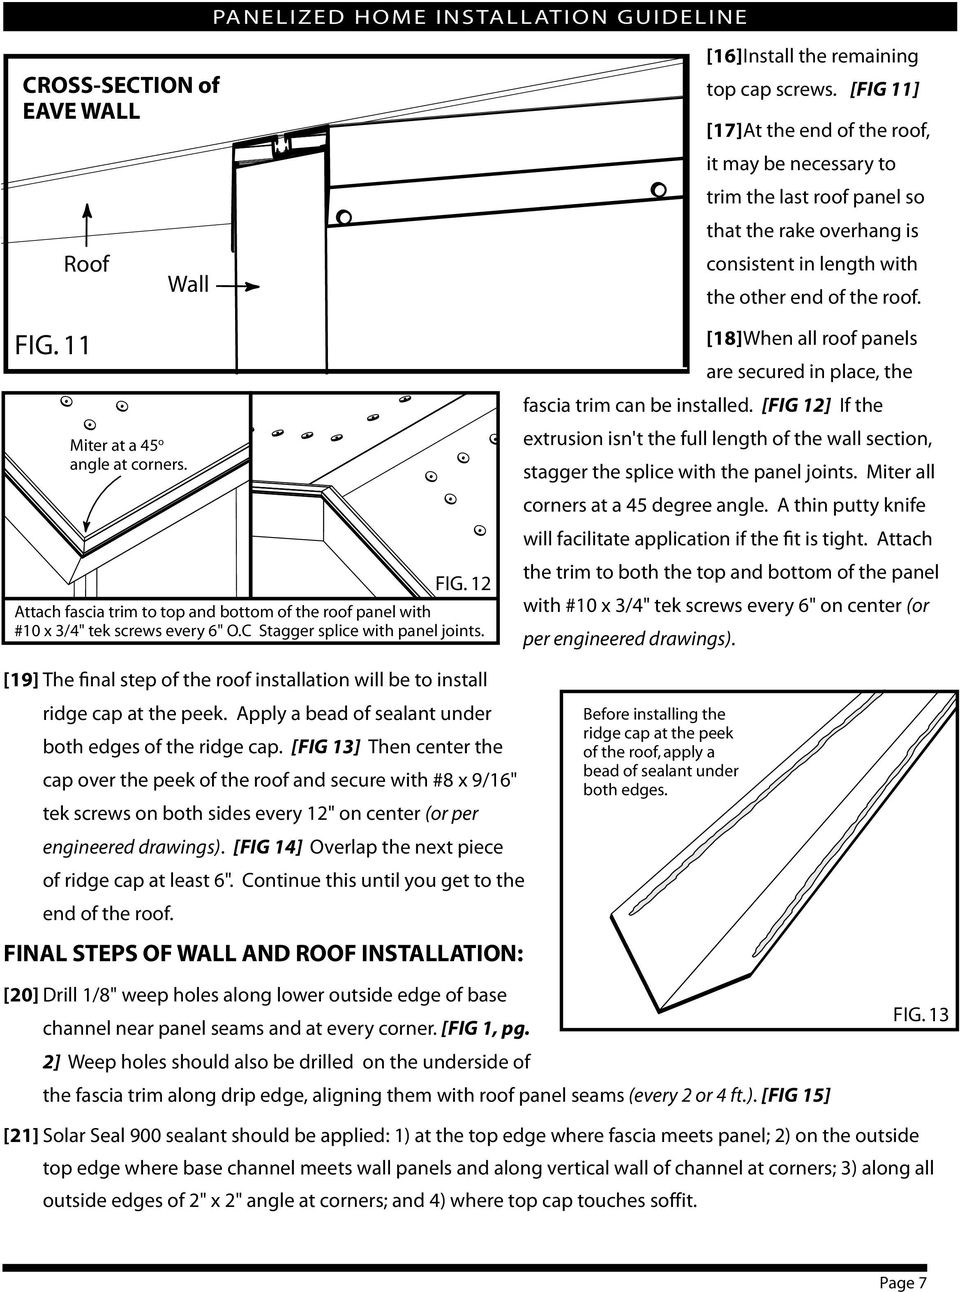 [FIG 11] [17] At the end of the roof, it may be necessary to trim the last roof panel so that the rake overhang is consistent in length with the other end of the roof.